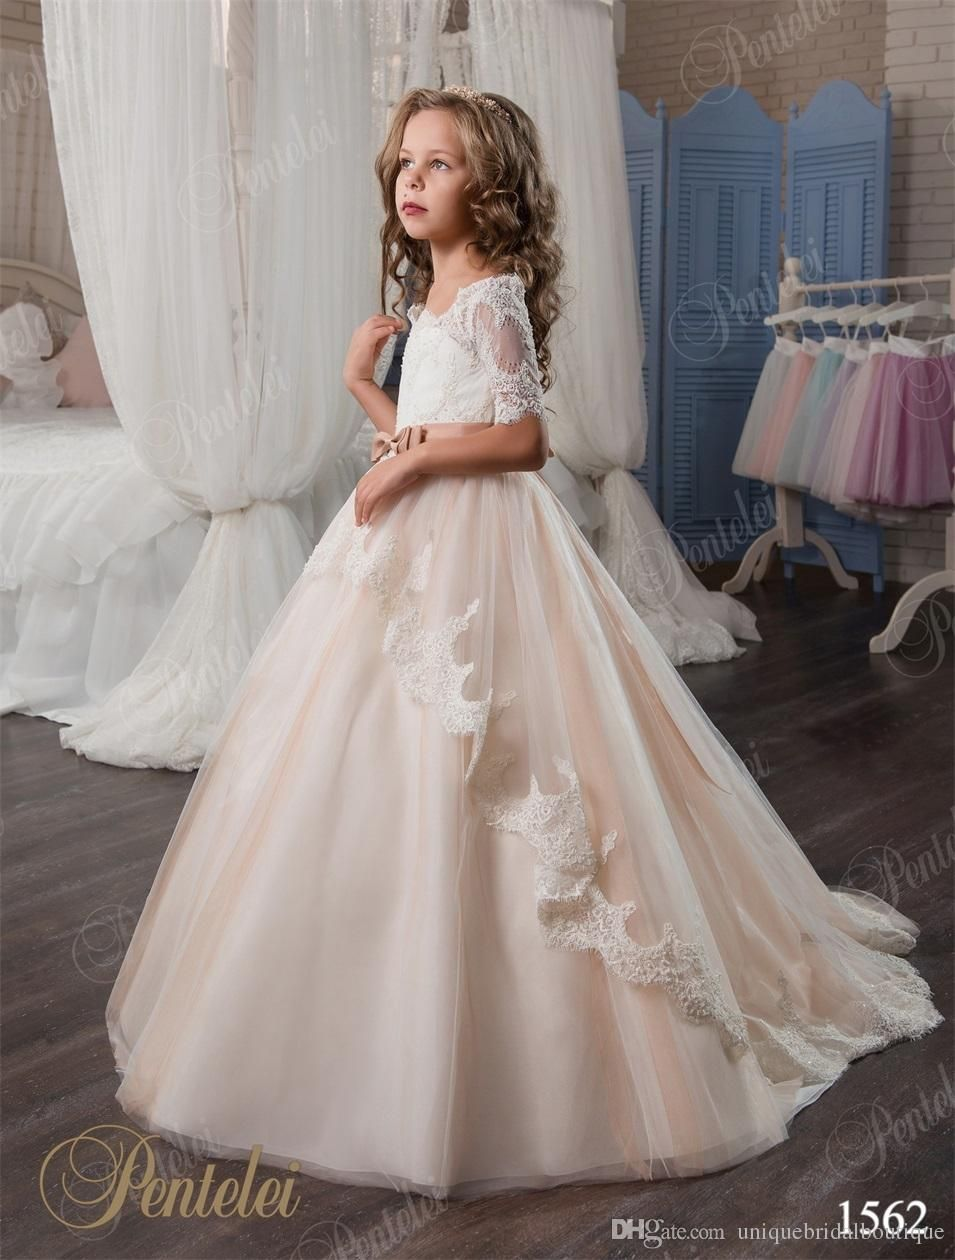 Kids wedding dresses 2017 pentelei with illusion long sleeves and 2017 vintage flower girls dresses pentelei with bow and 21 sleeves ball gown champagne ombrellifo Images